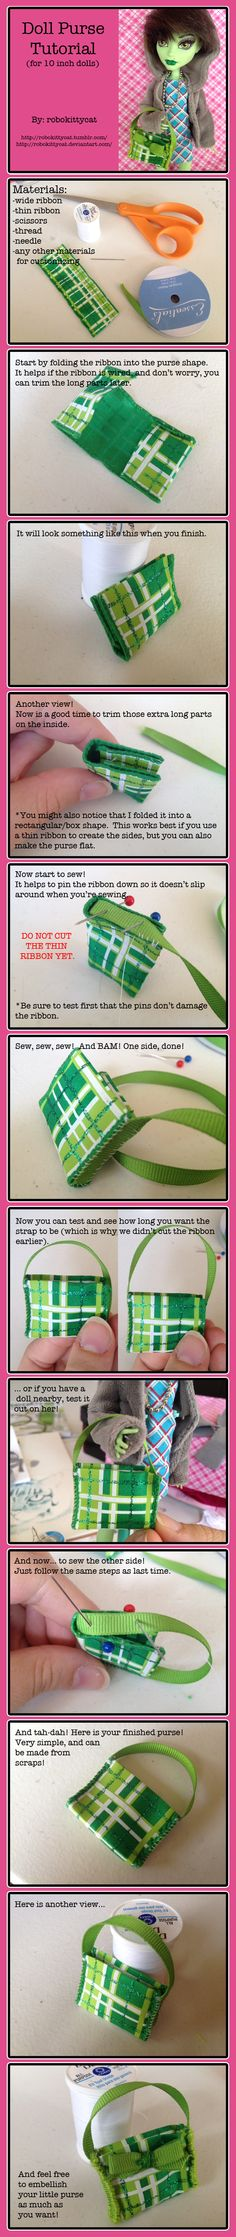 Doll Purse Tutorial! by ~robokittycat on deviantART